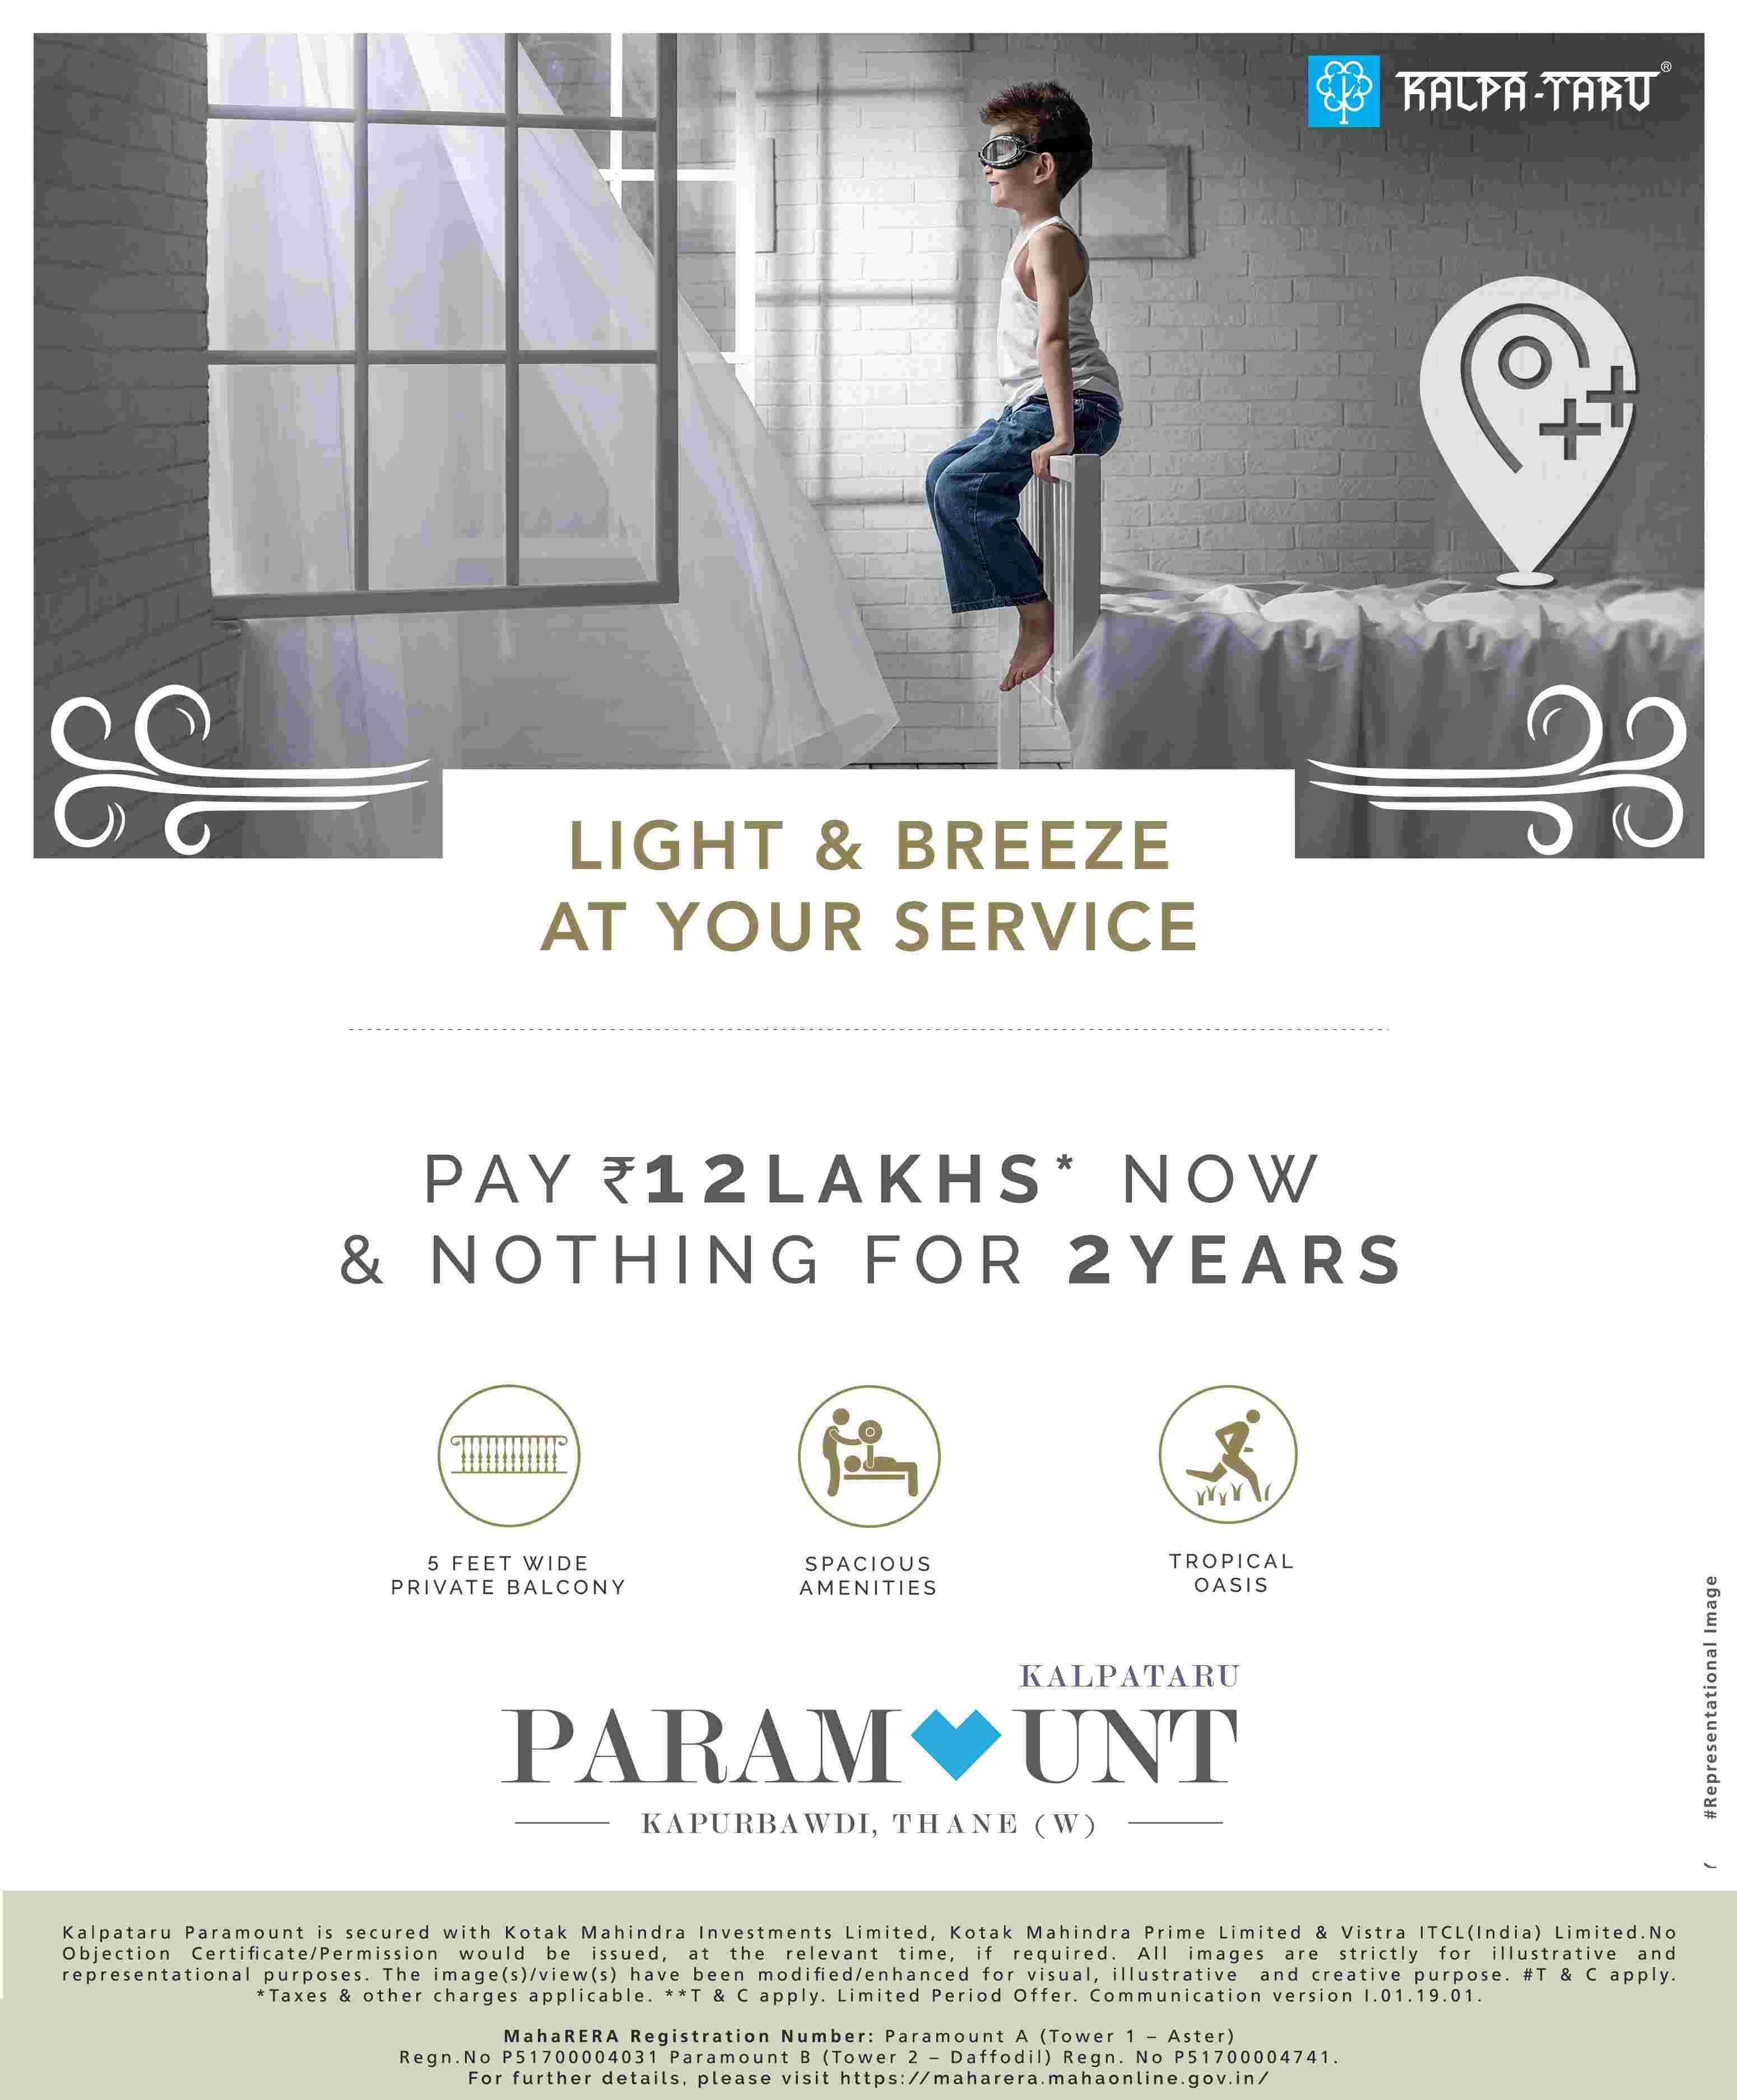 Pay Rs 12 Lakhs Now And Nothing For 2 Years At Kalpataru Paramount